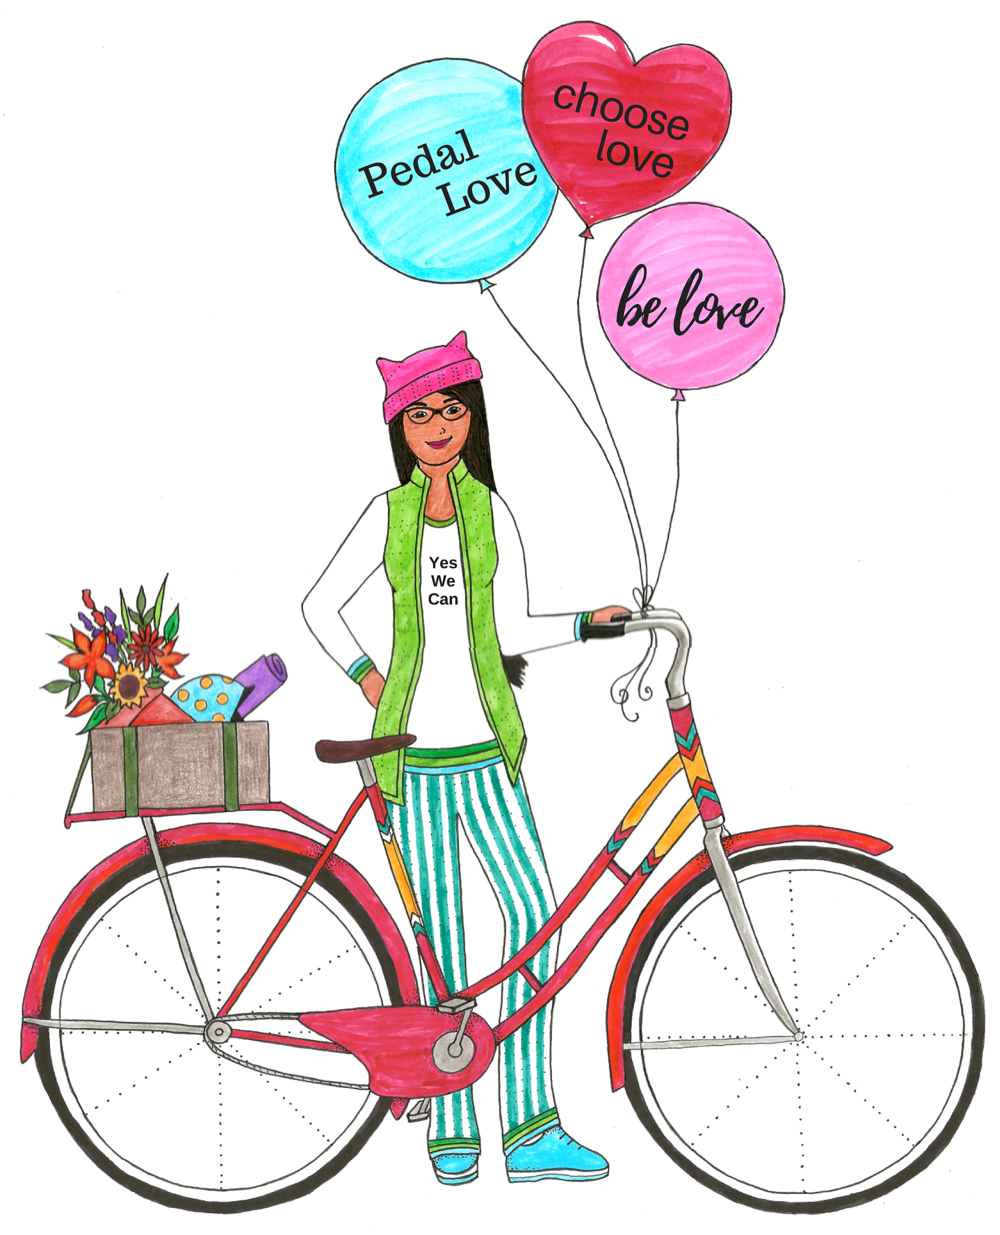 The colored in version of my Pedal Love Girl illustration wearing a Pussy Hat is available as t-shirts, mugs and other nice things on our Pedal Love online boutique at Zazzle.com. She'll also be available for you to color in yourself in the upcoming Pedal Love coloring book.